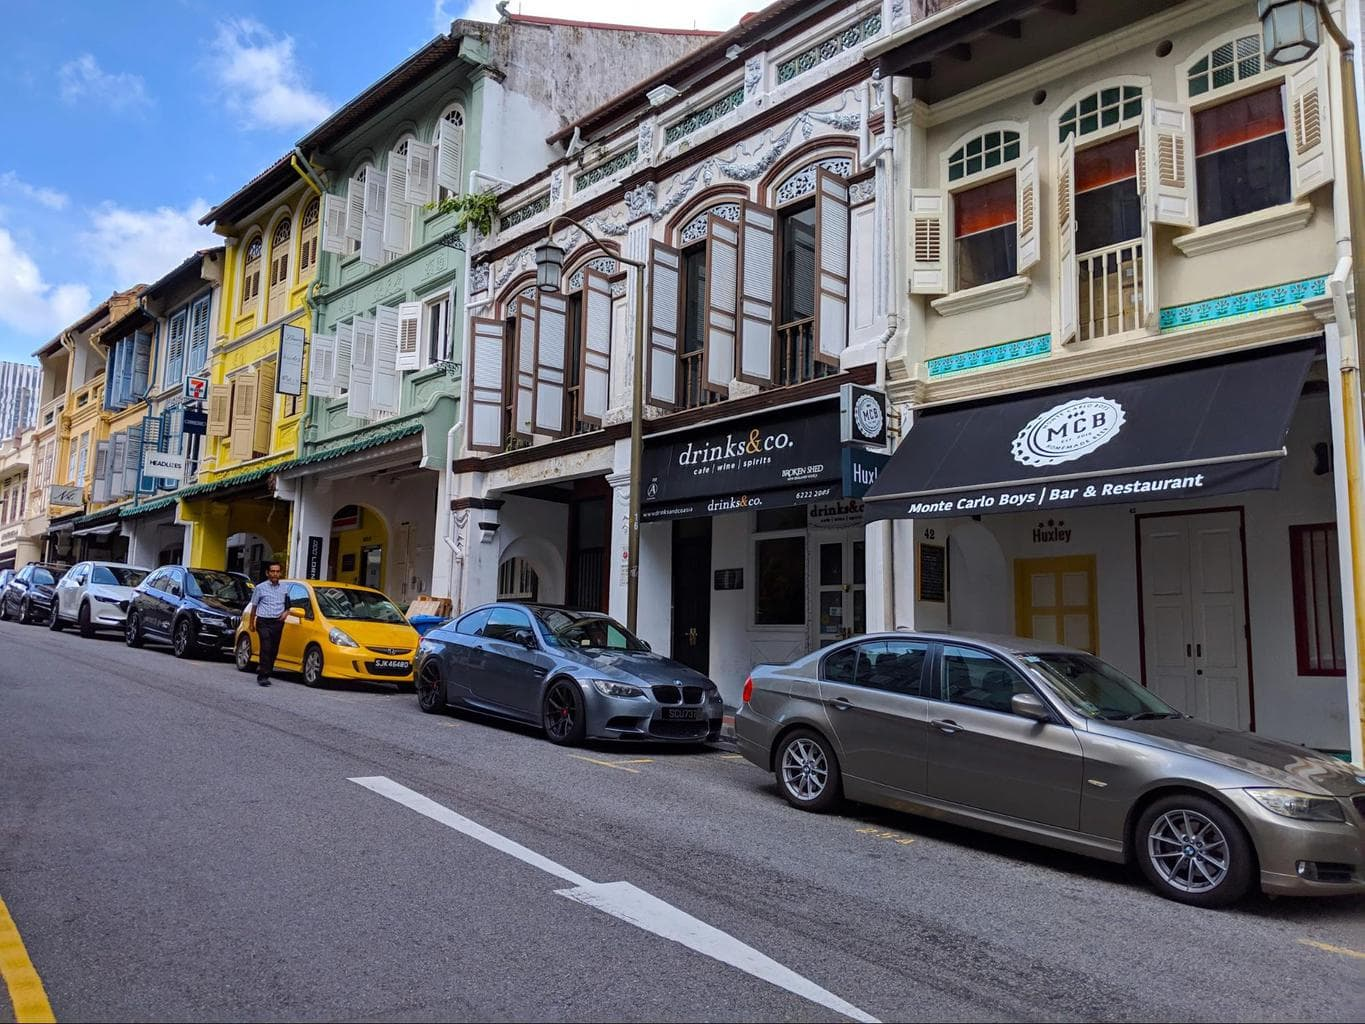 Club Street shophouses by day